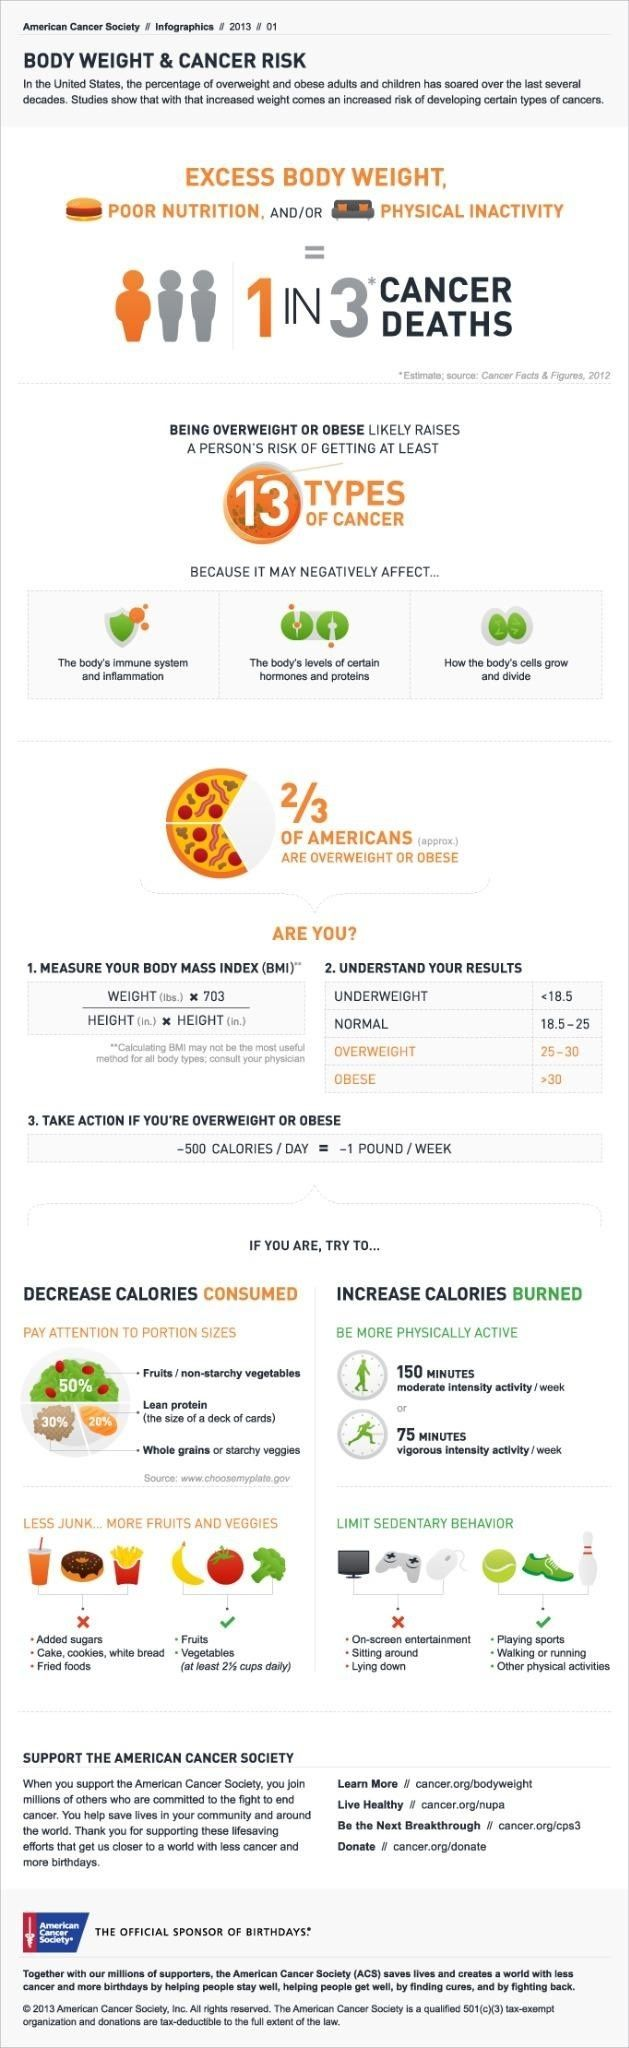 18 best breast cancer infographics images on pinterest breast this infographic highlights growing data suggesting a strong relationship between cancer risk and excess body weight as well as ways to reduce this risk toneelgroepblik Choice Image